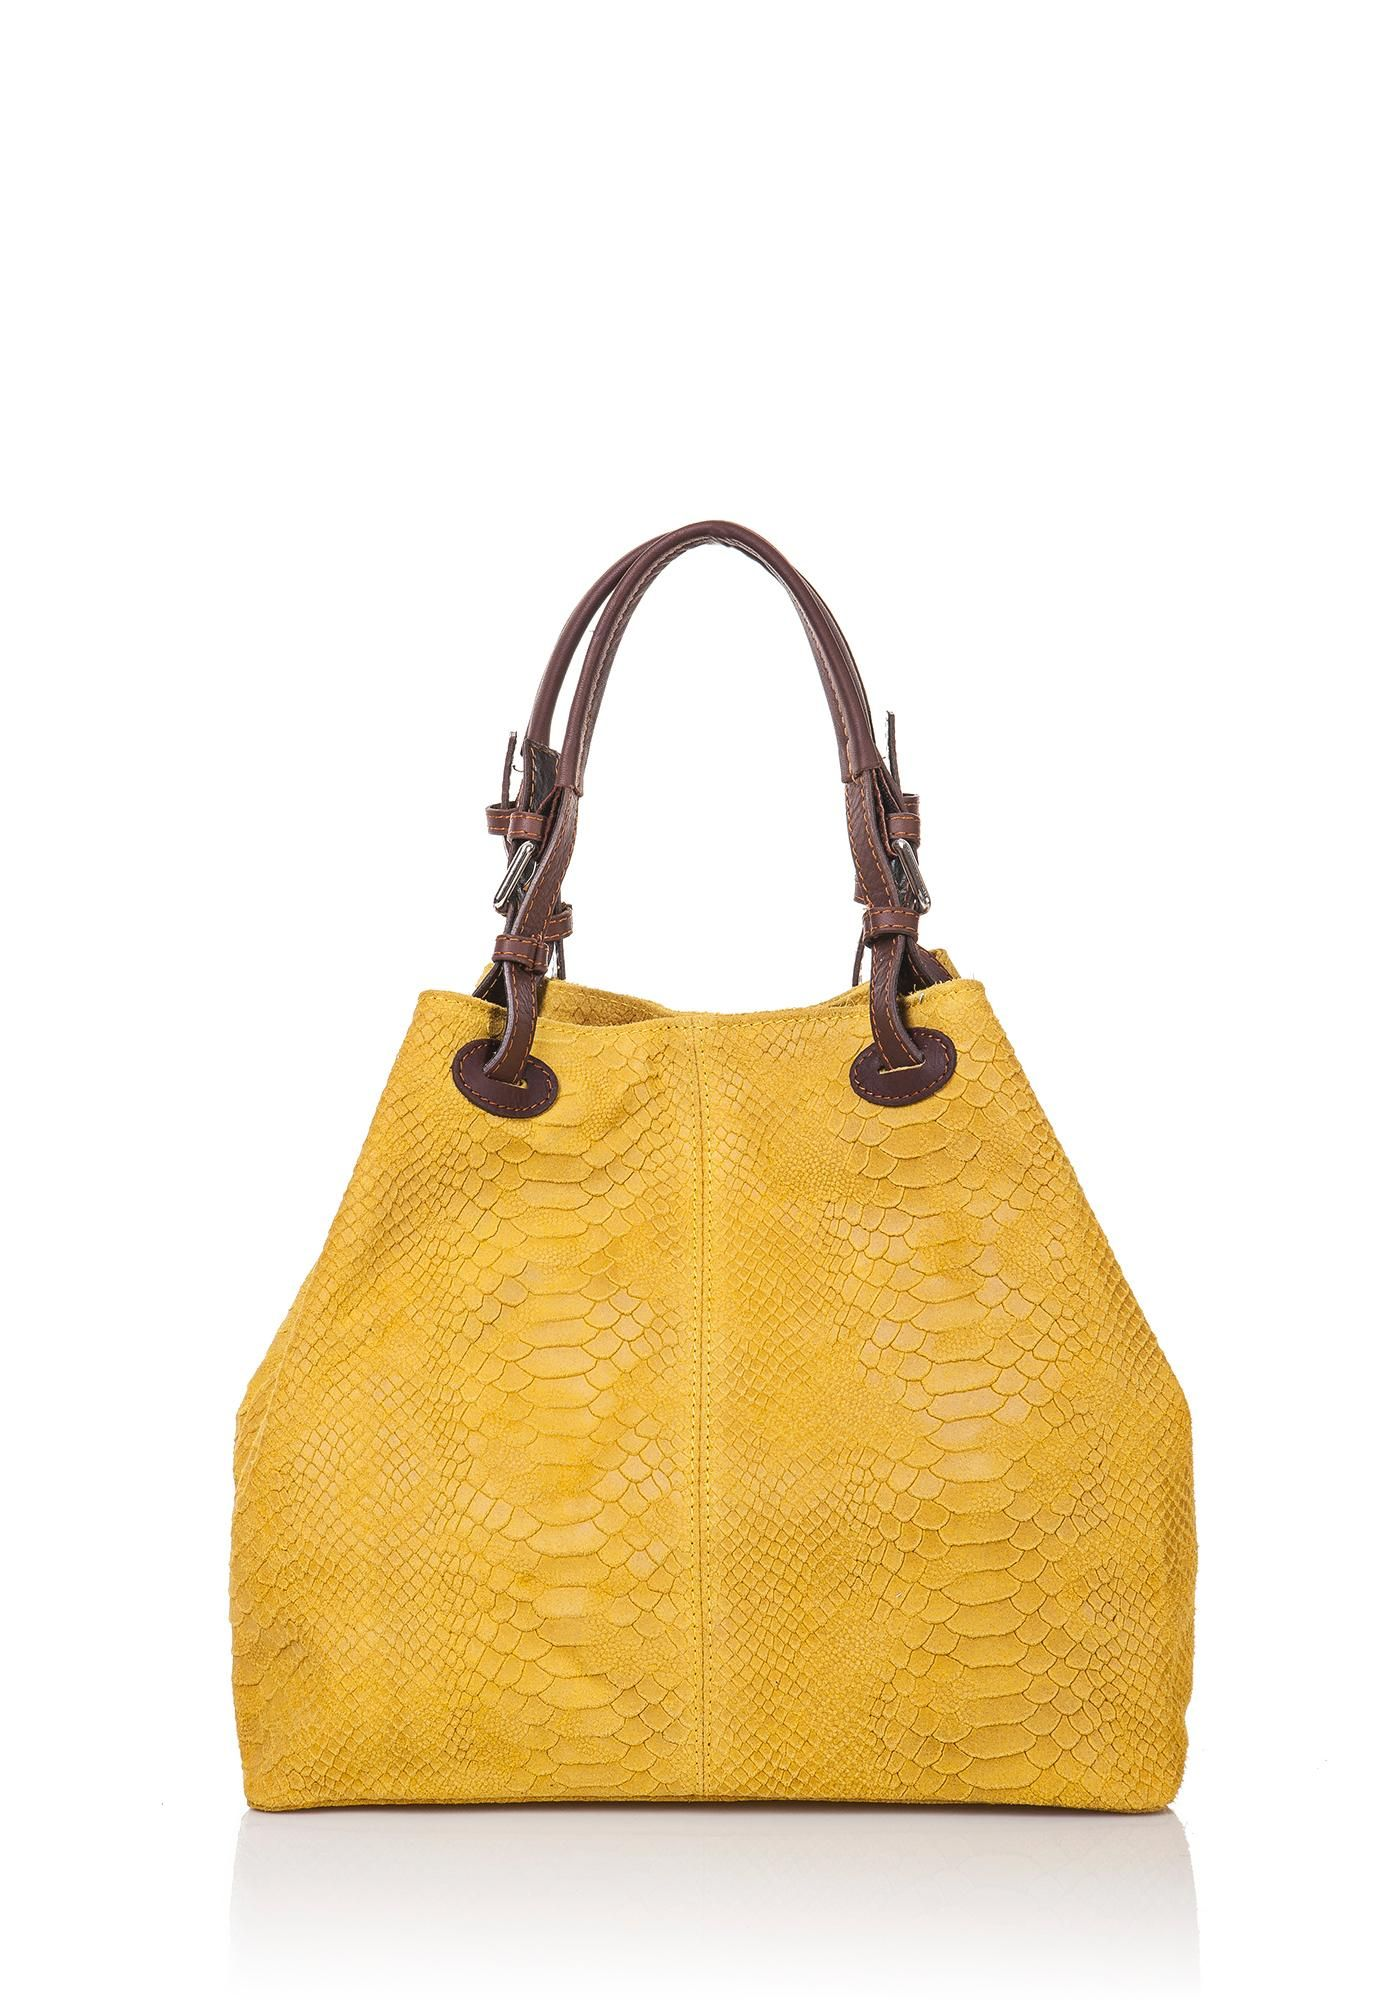 Leather Handbag Manufacturer Bags Briefcases Whole In Florence Italy